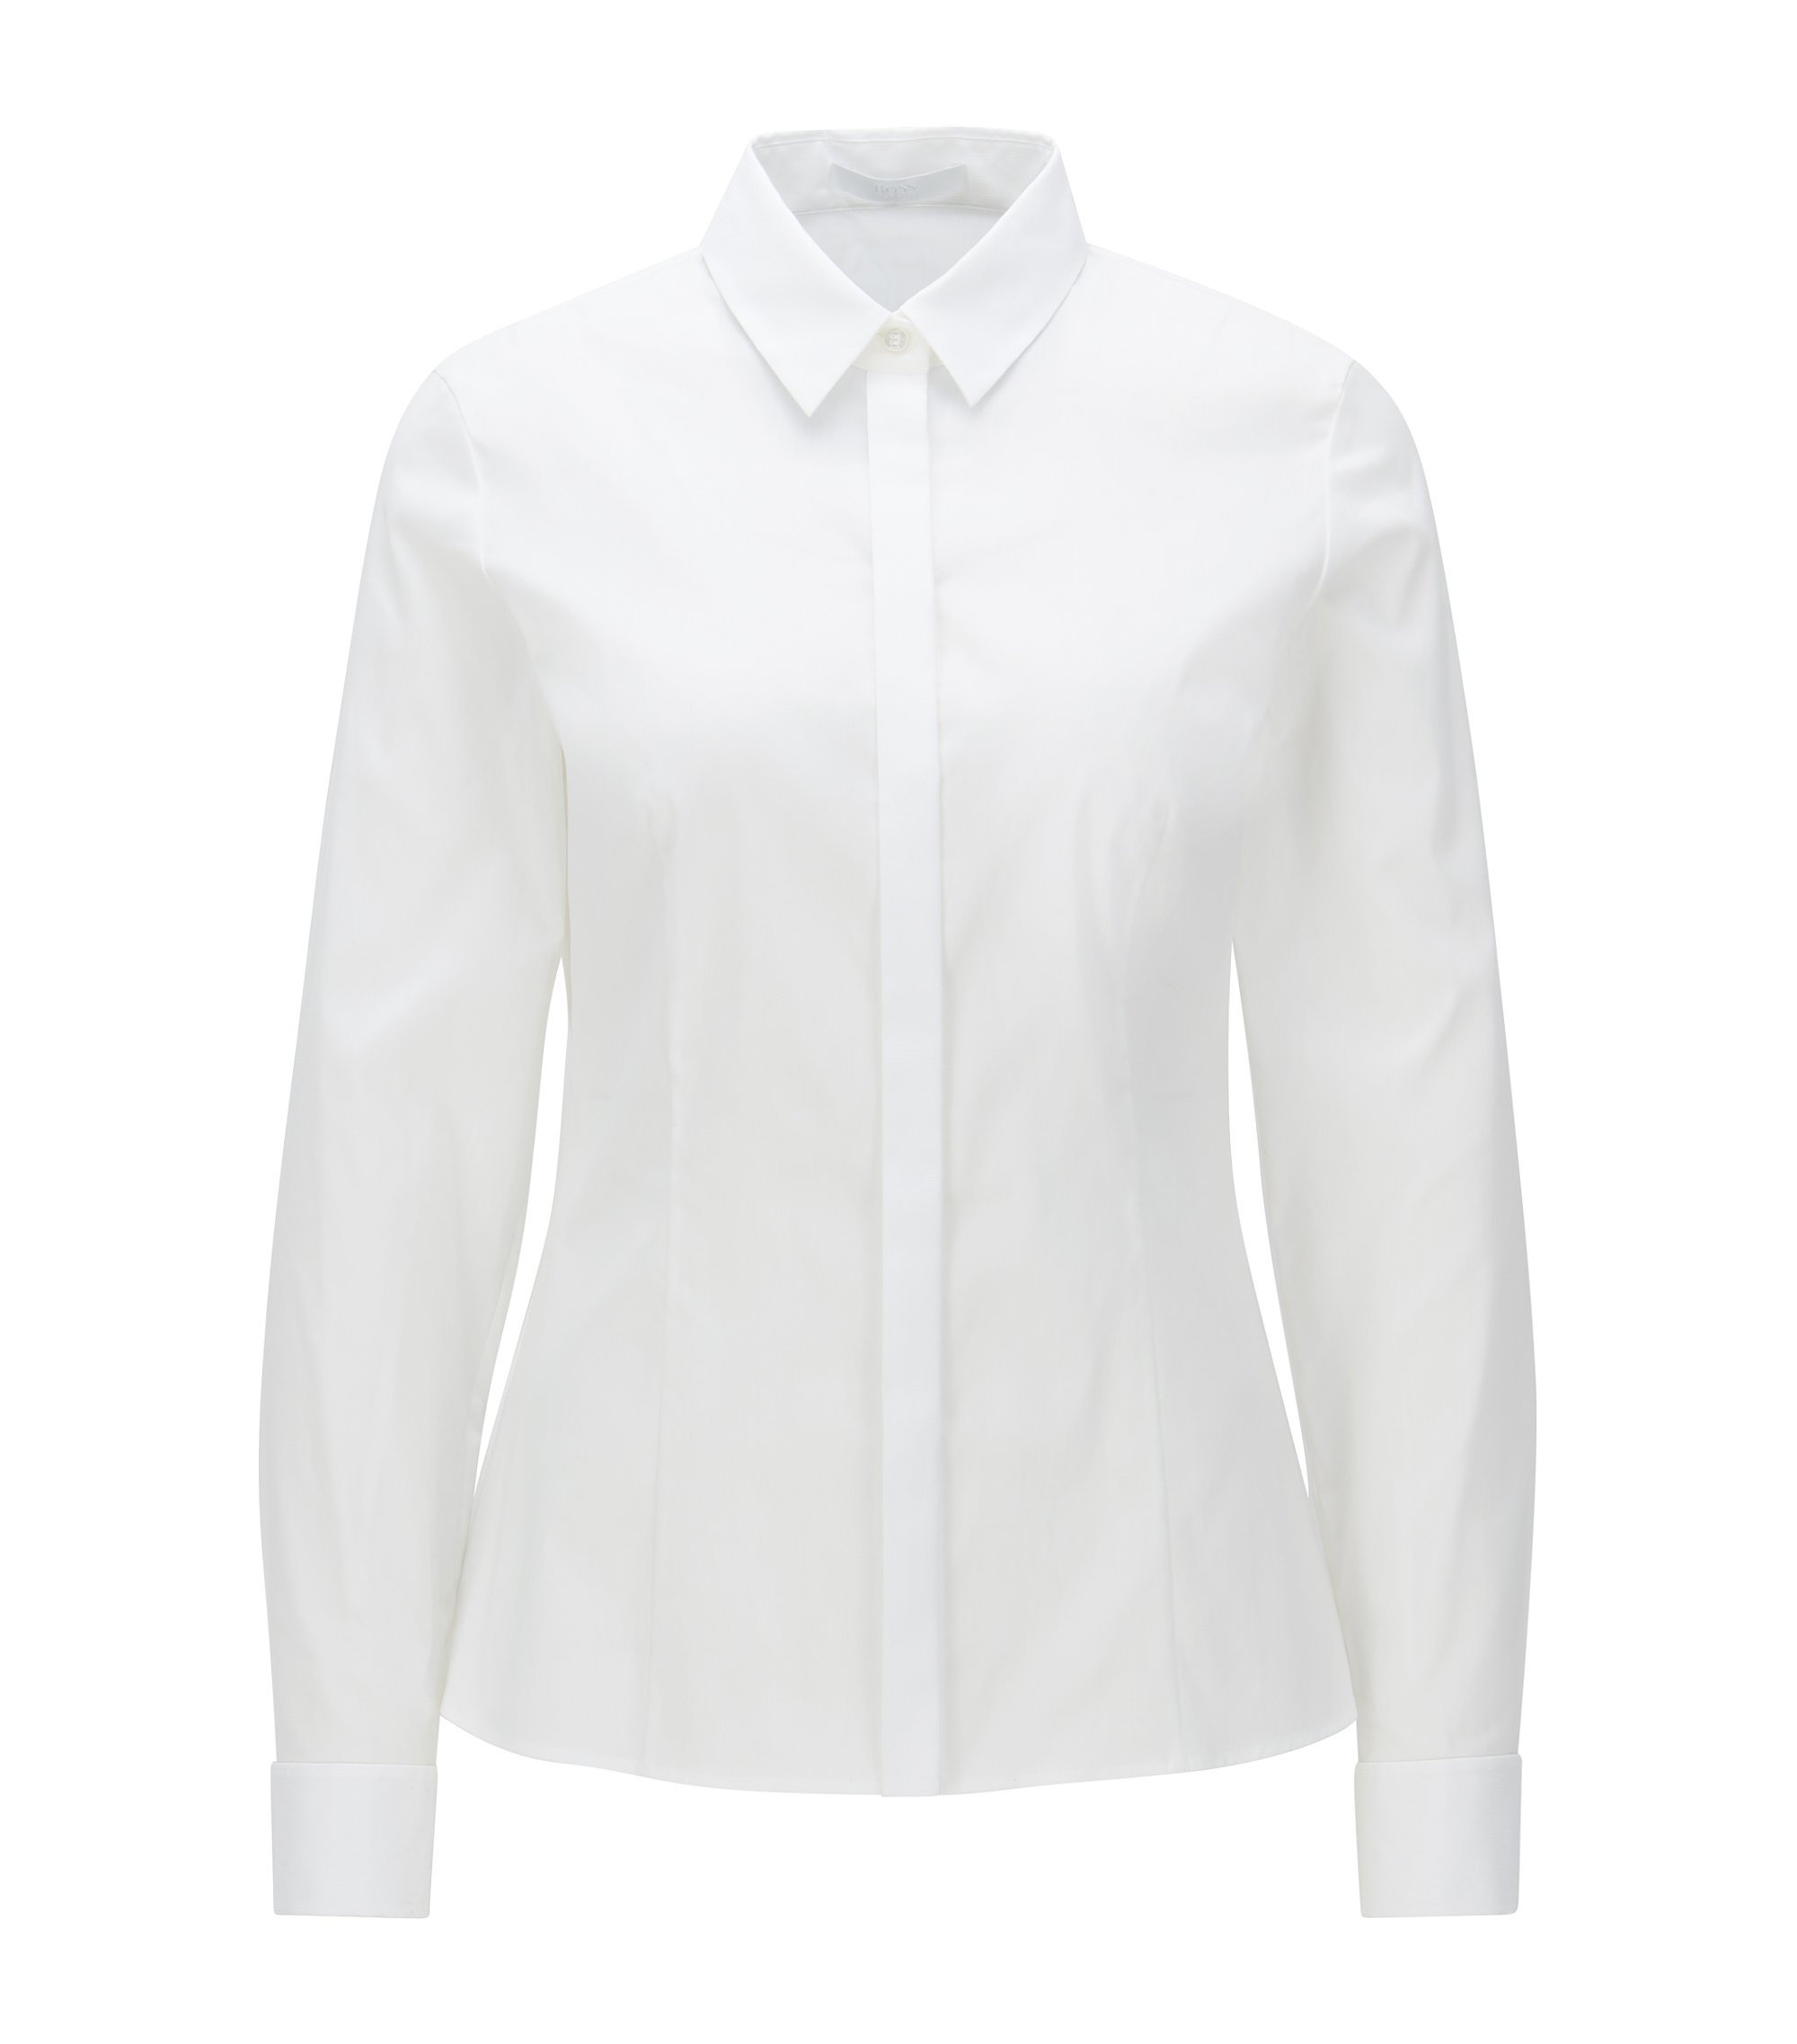 Cotton Blend Shirt | Bitara, White